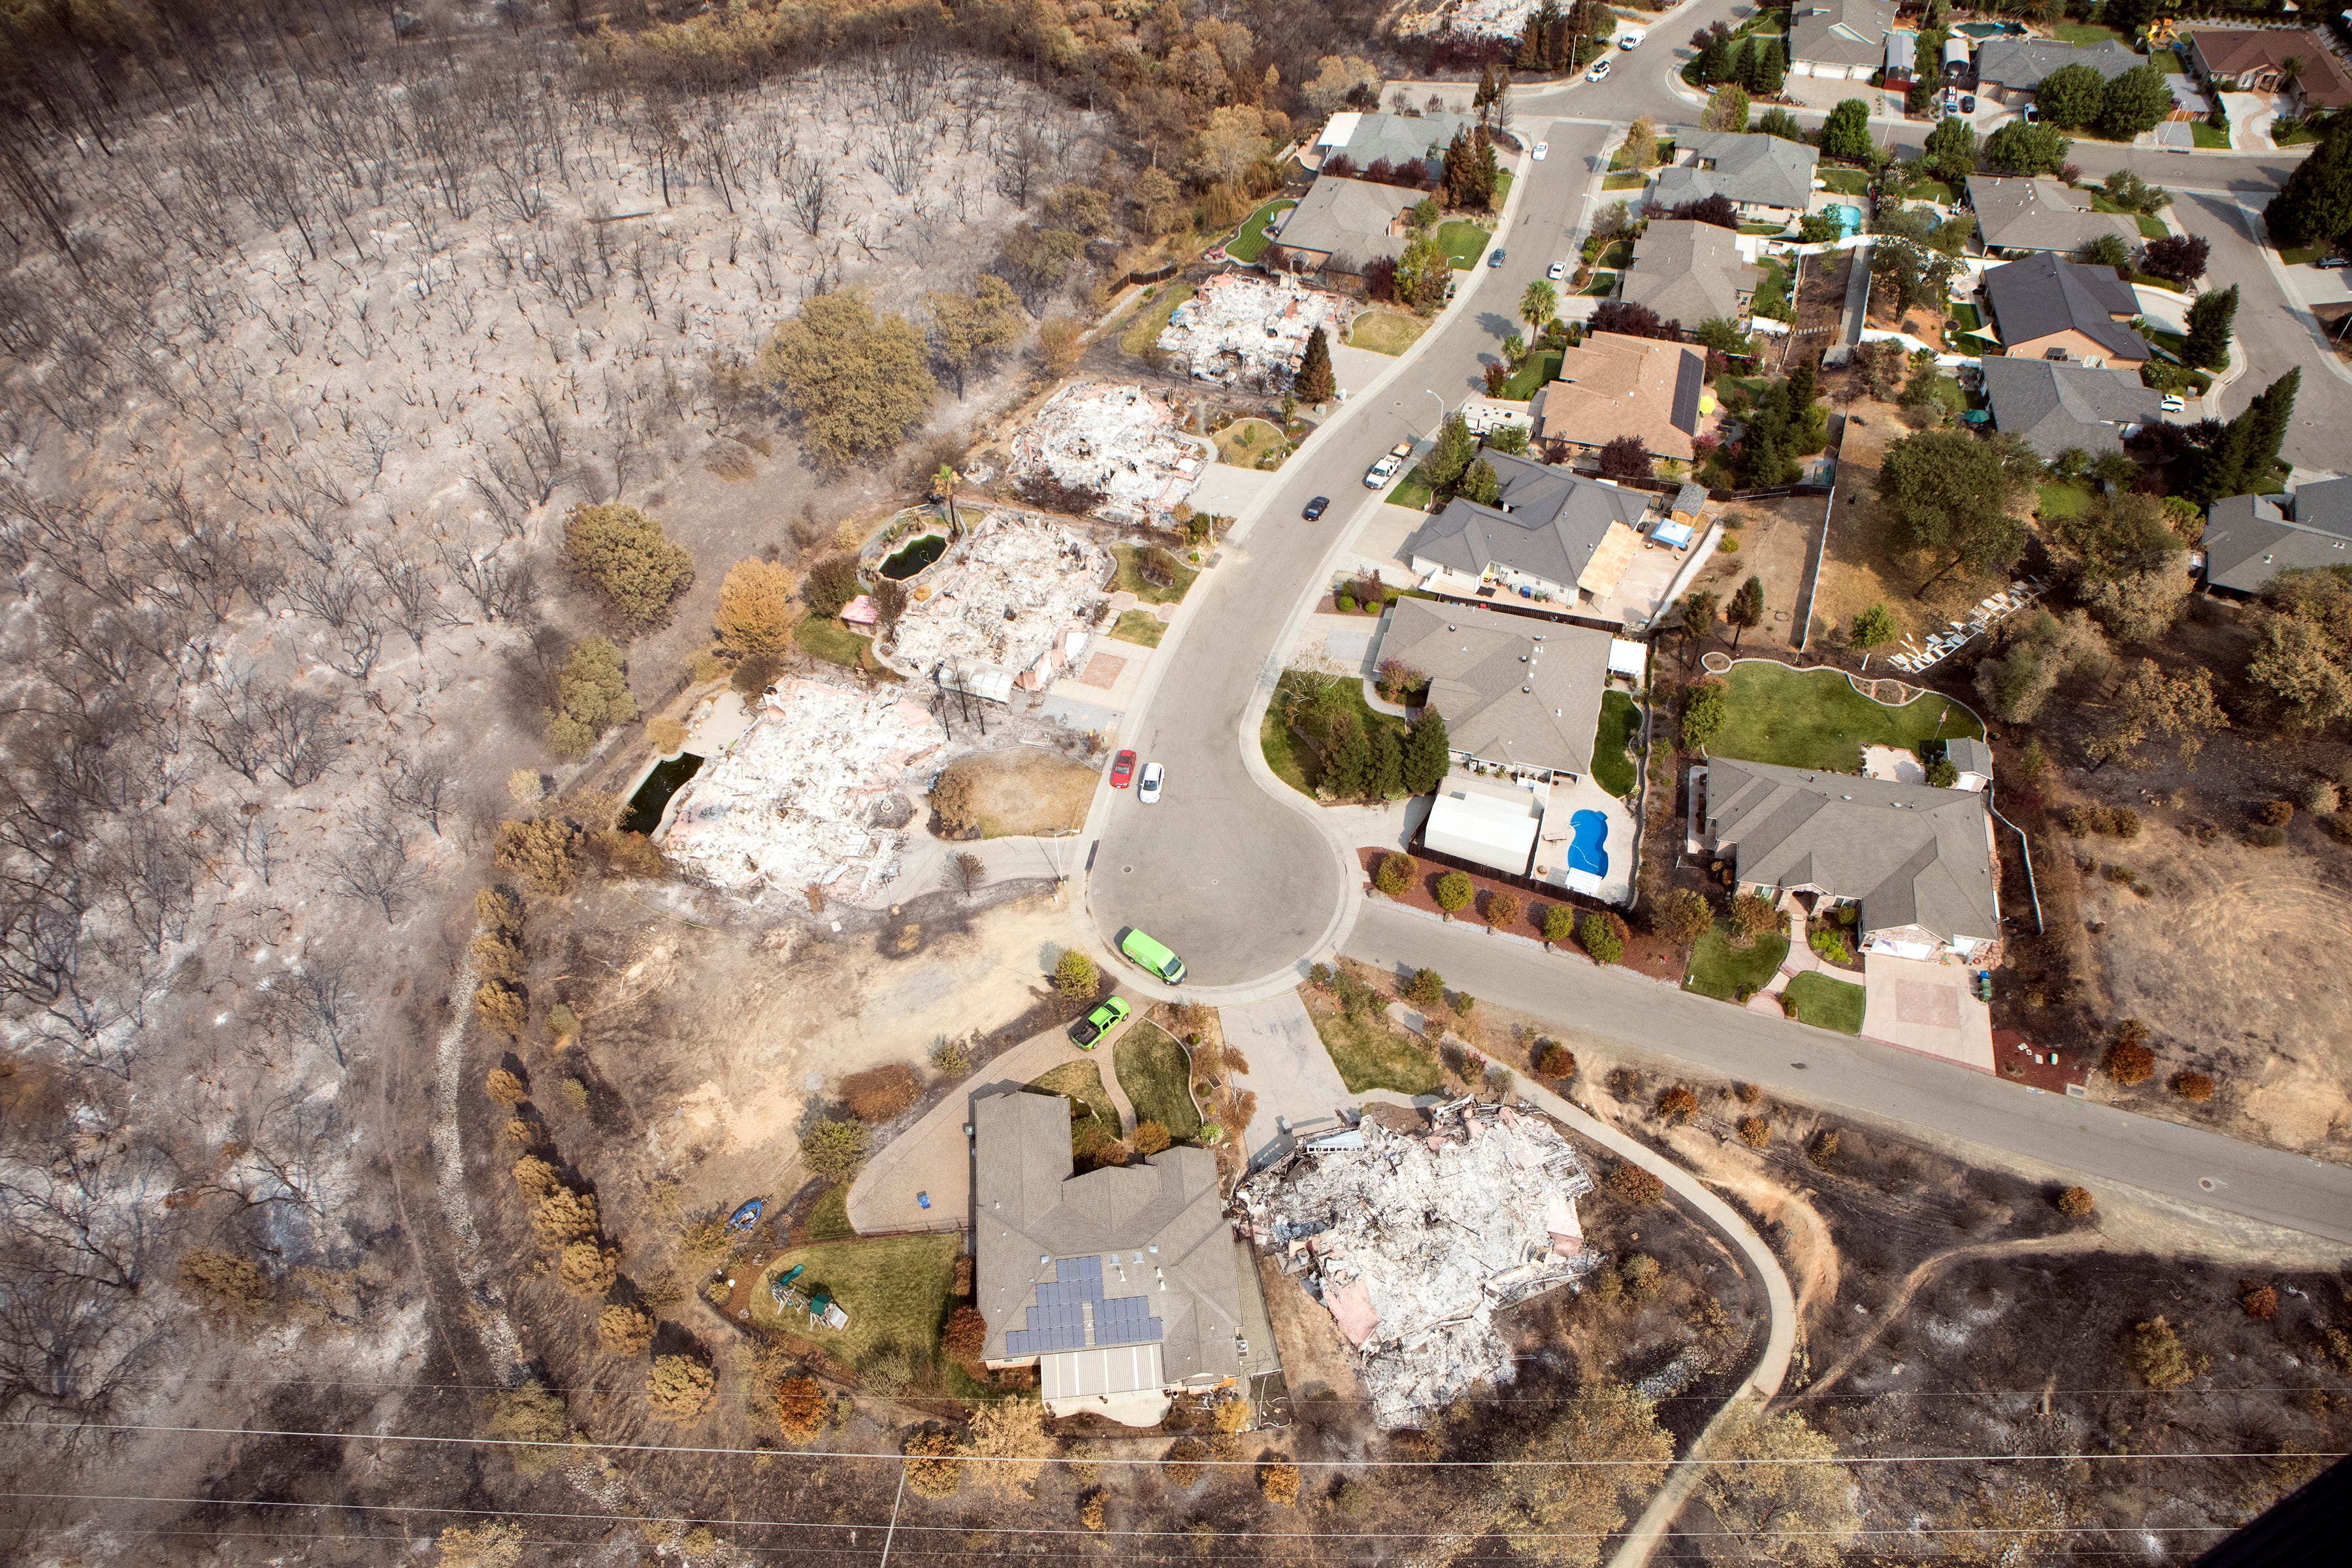 Aerial View Of California Fire Destruction Shows Extent Of